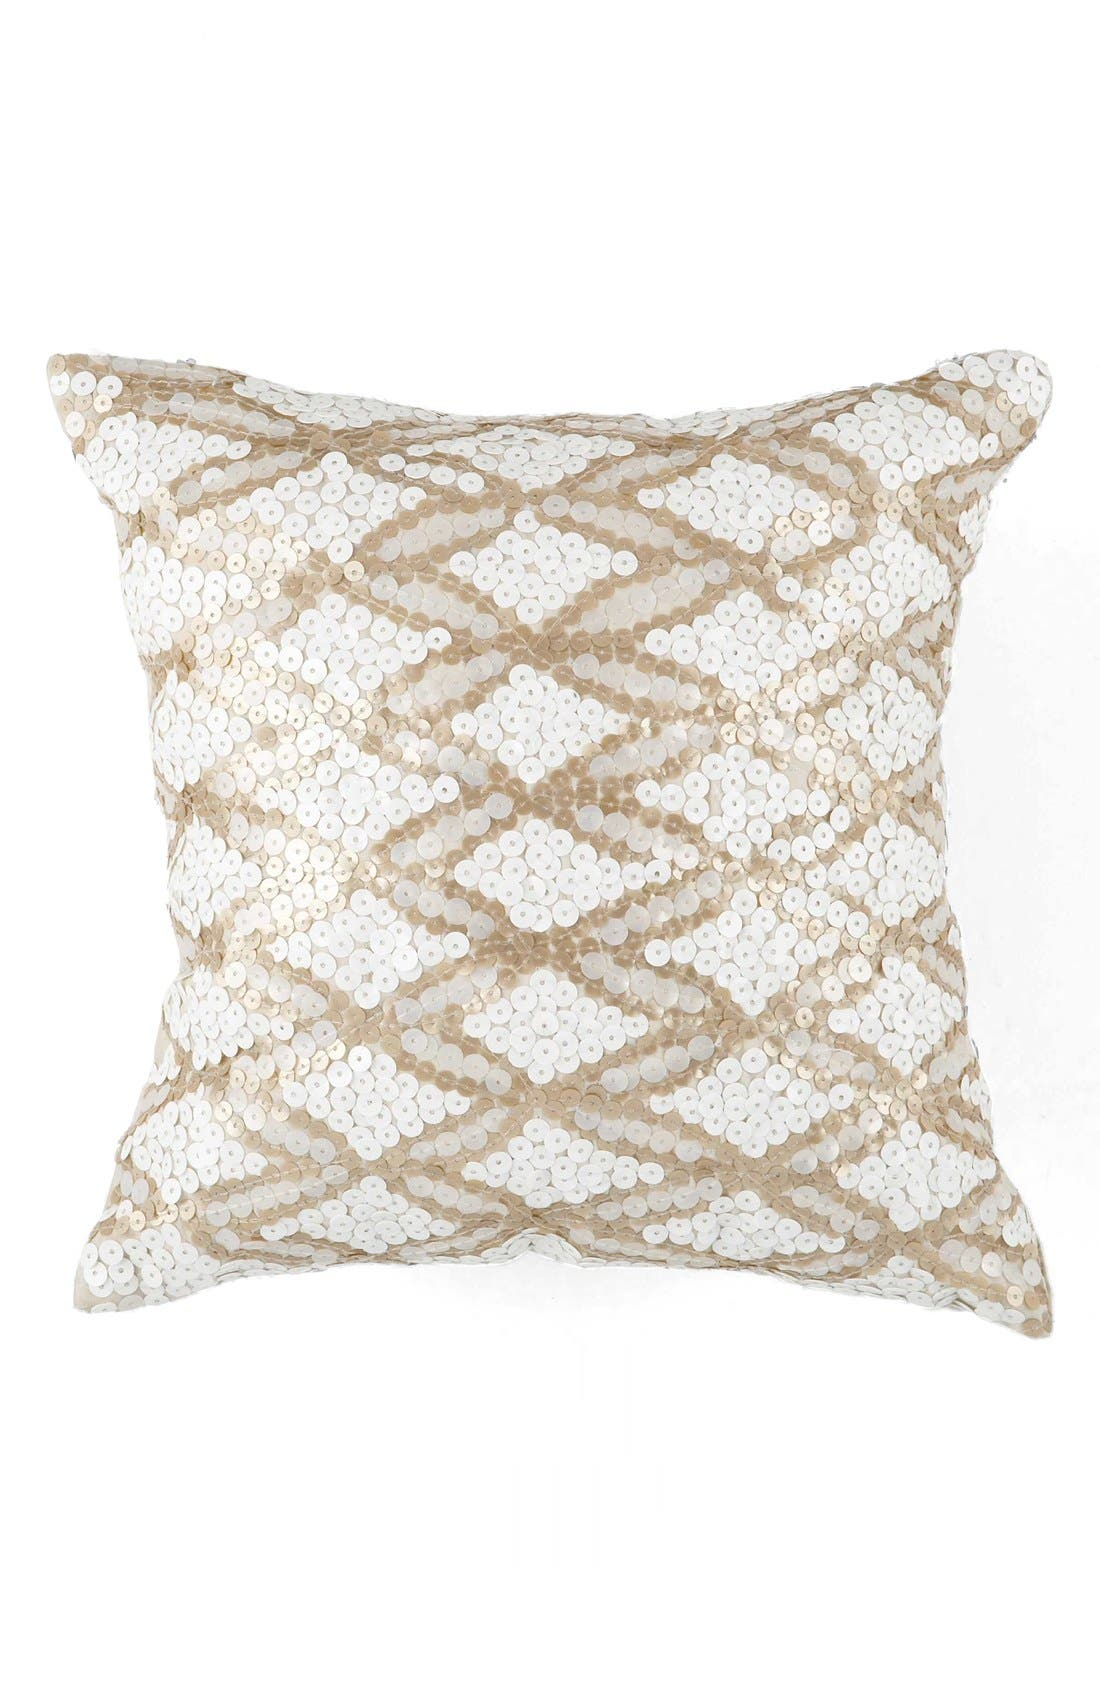 Alternate Image 1 Selected - KAS Designs 'Gemma' Pillow